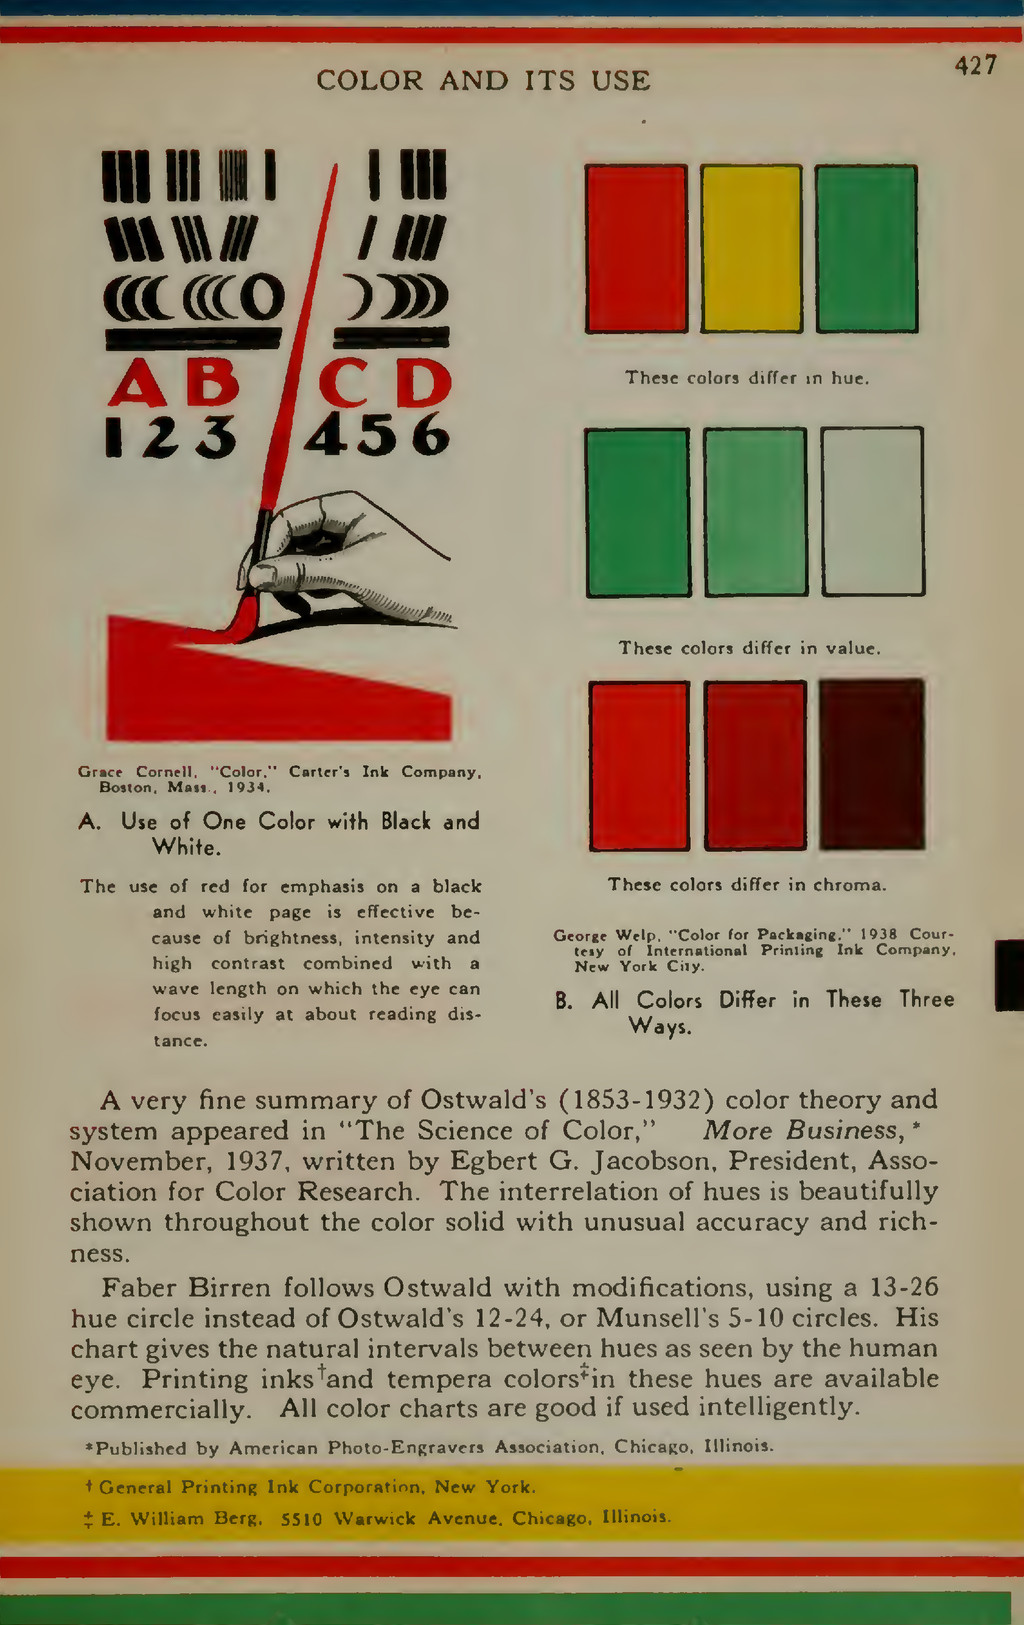 COLOR AND ITS USE 427 mill 11 /I III axceo / :>...